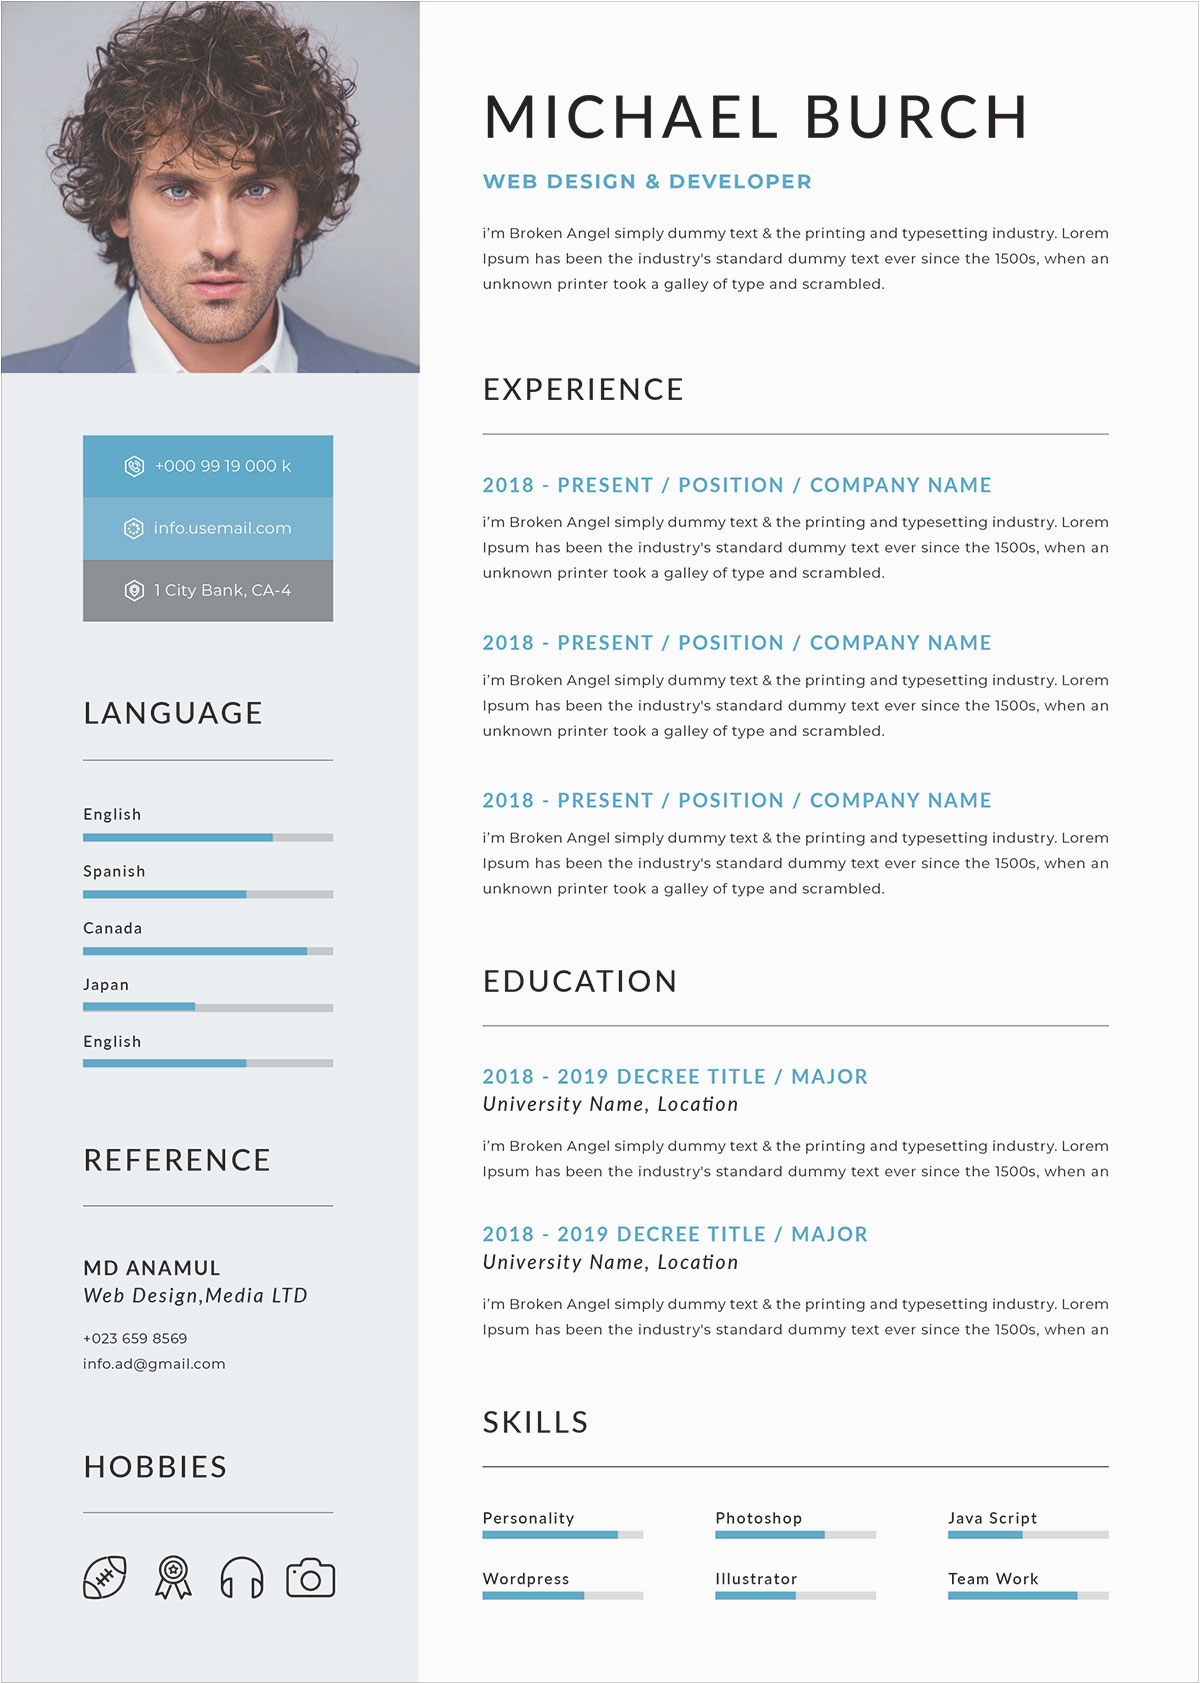 Sample Resume format Doc File Download Free Professional Resume Template In Doc Psd & Ai format